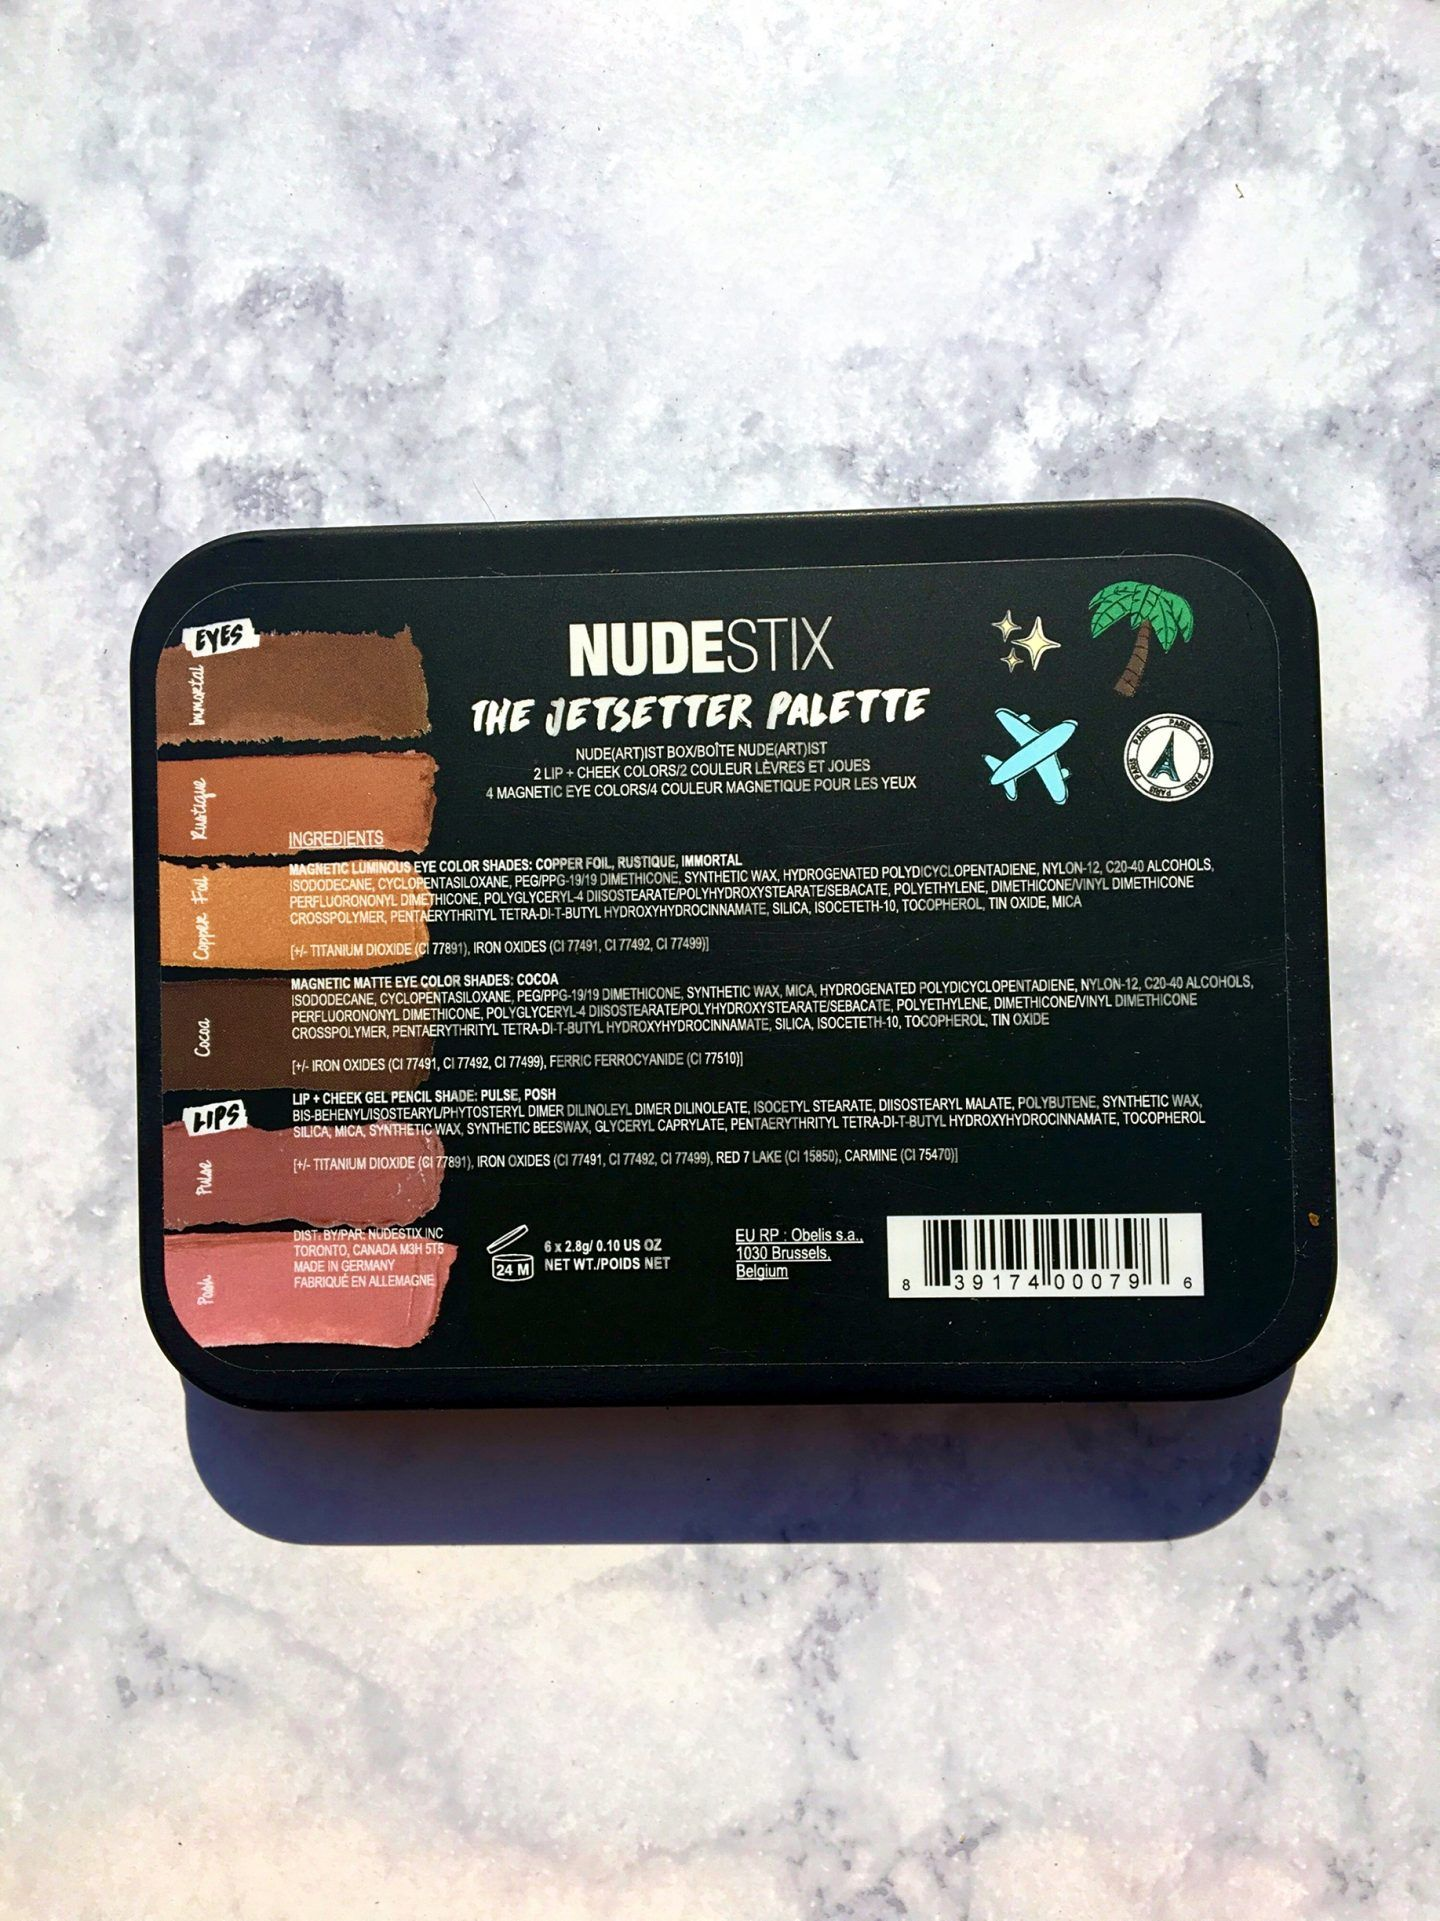 Nudestix Jetsetter Set by Mary Phillips Review, Swatches